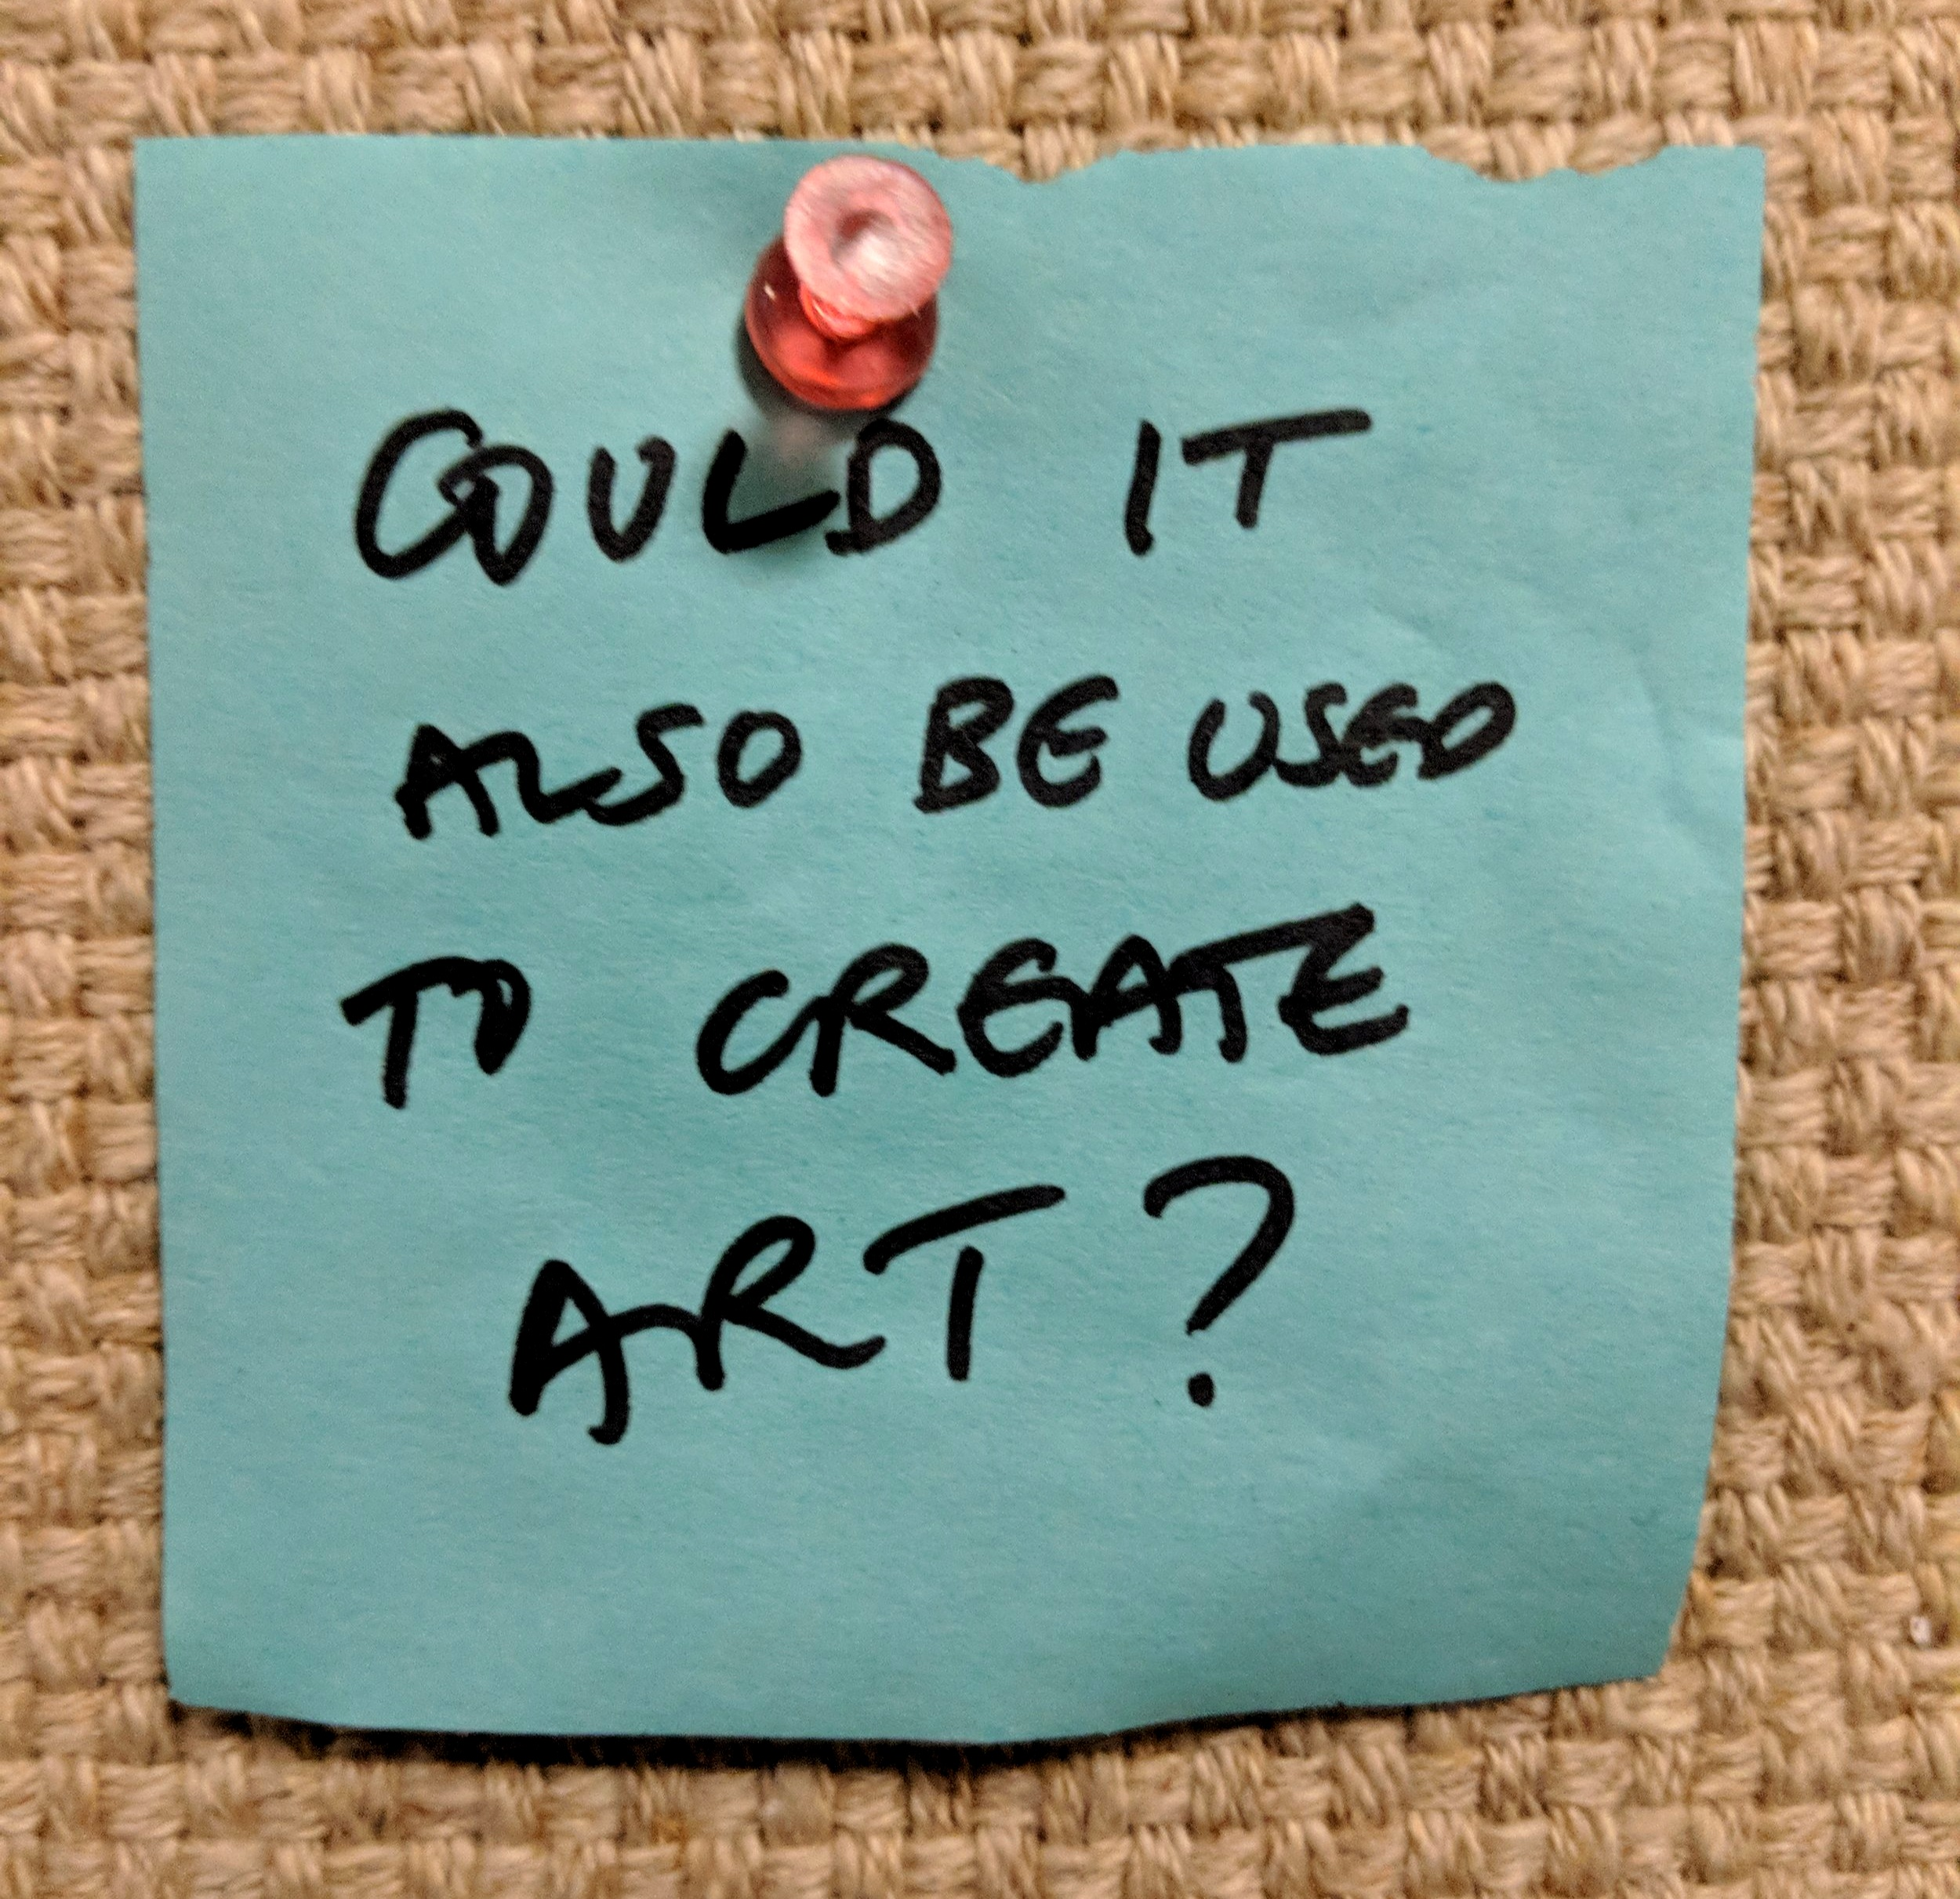 Could it also be used to create art?